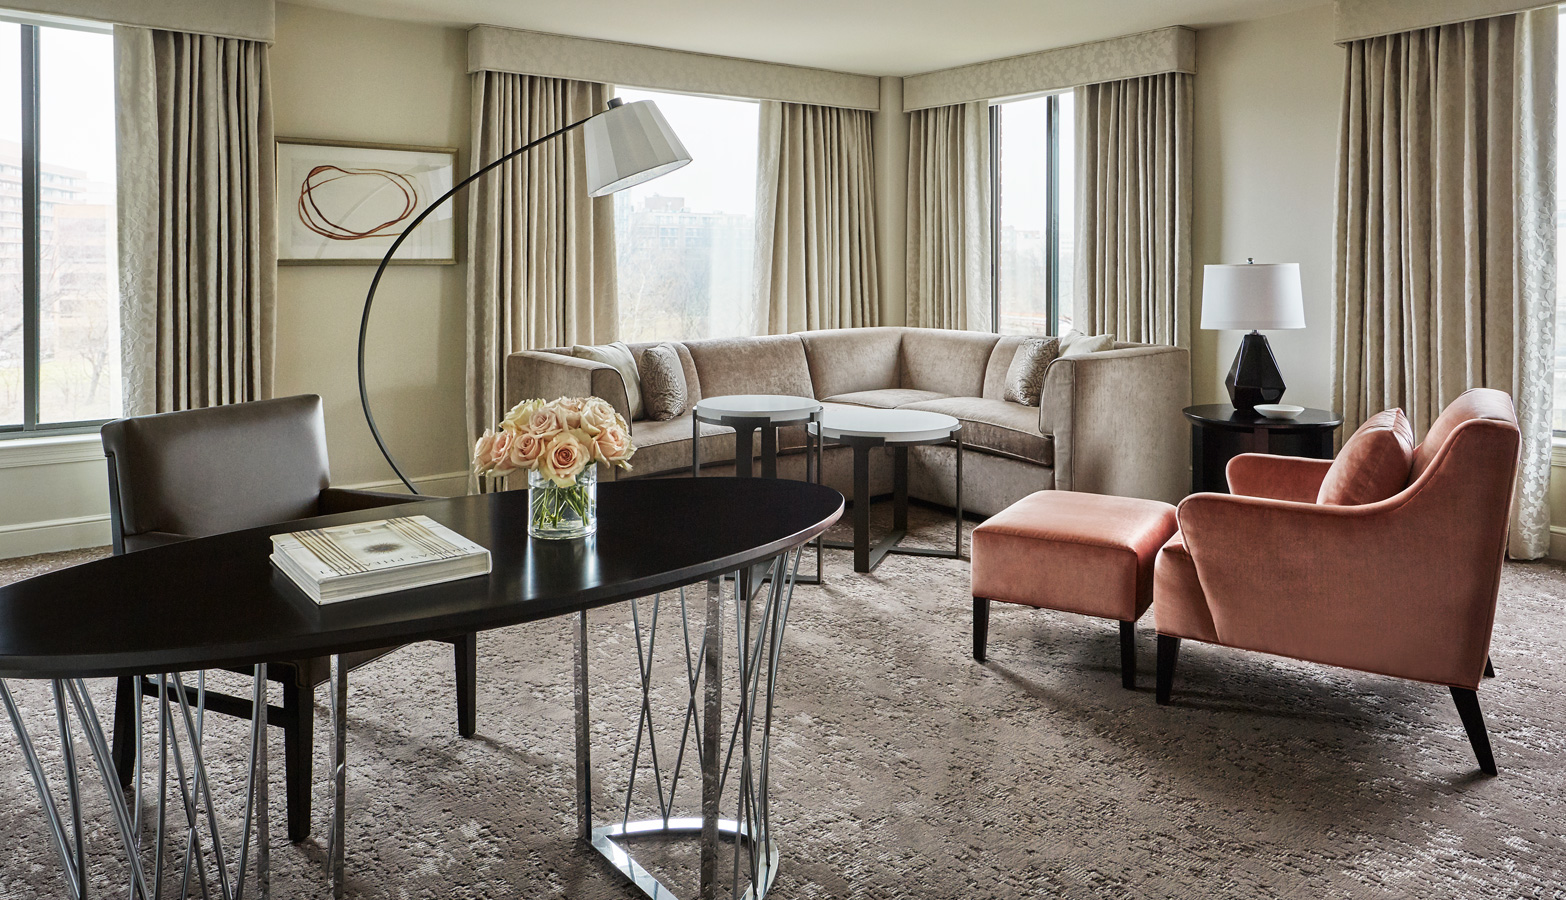 Desk and sitting area in guestroom at the Four Seasons hotel